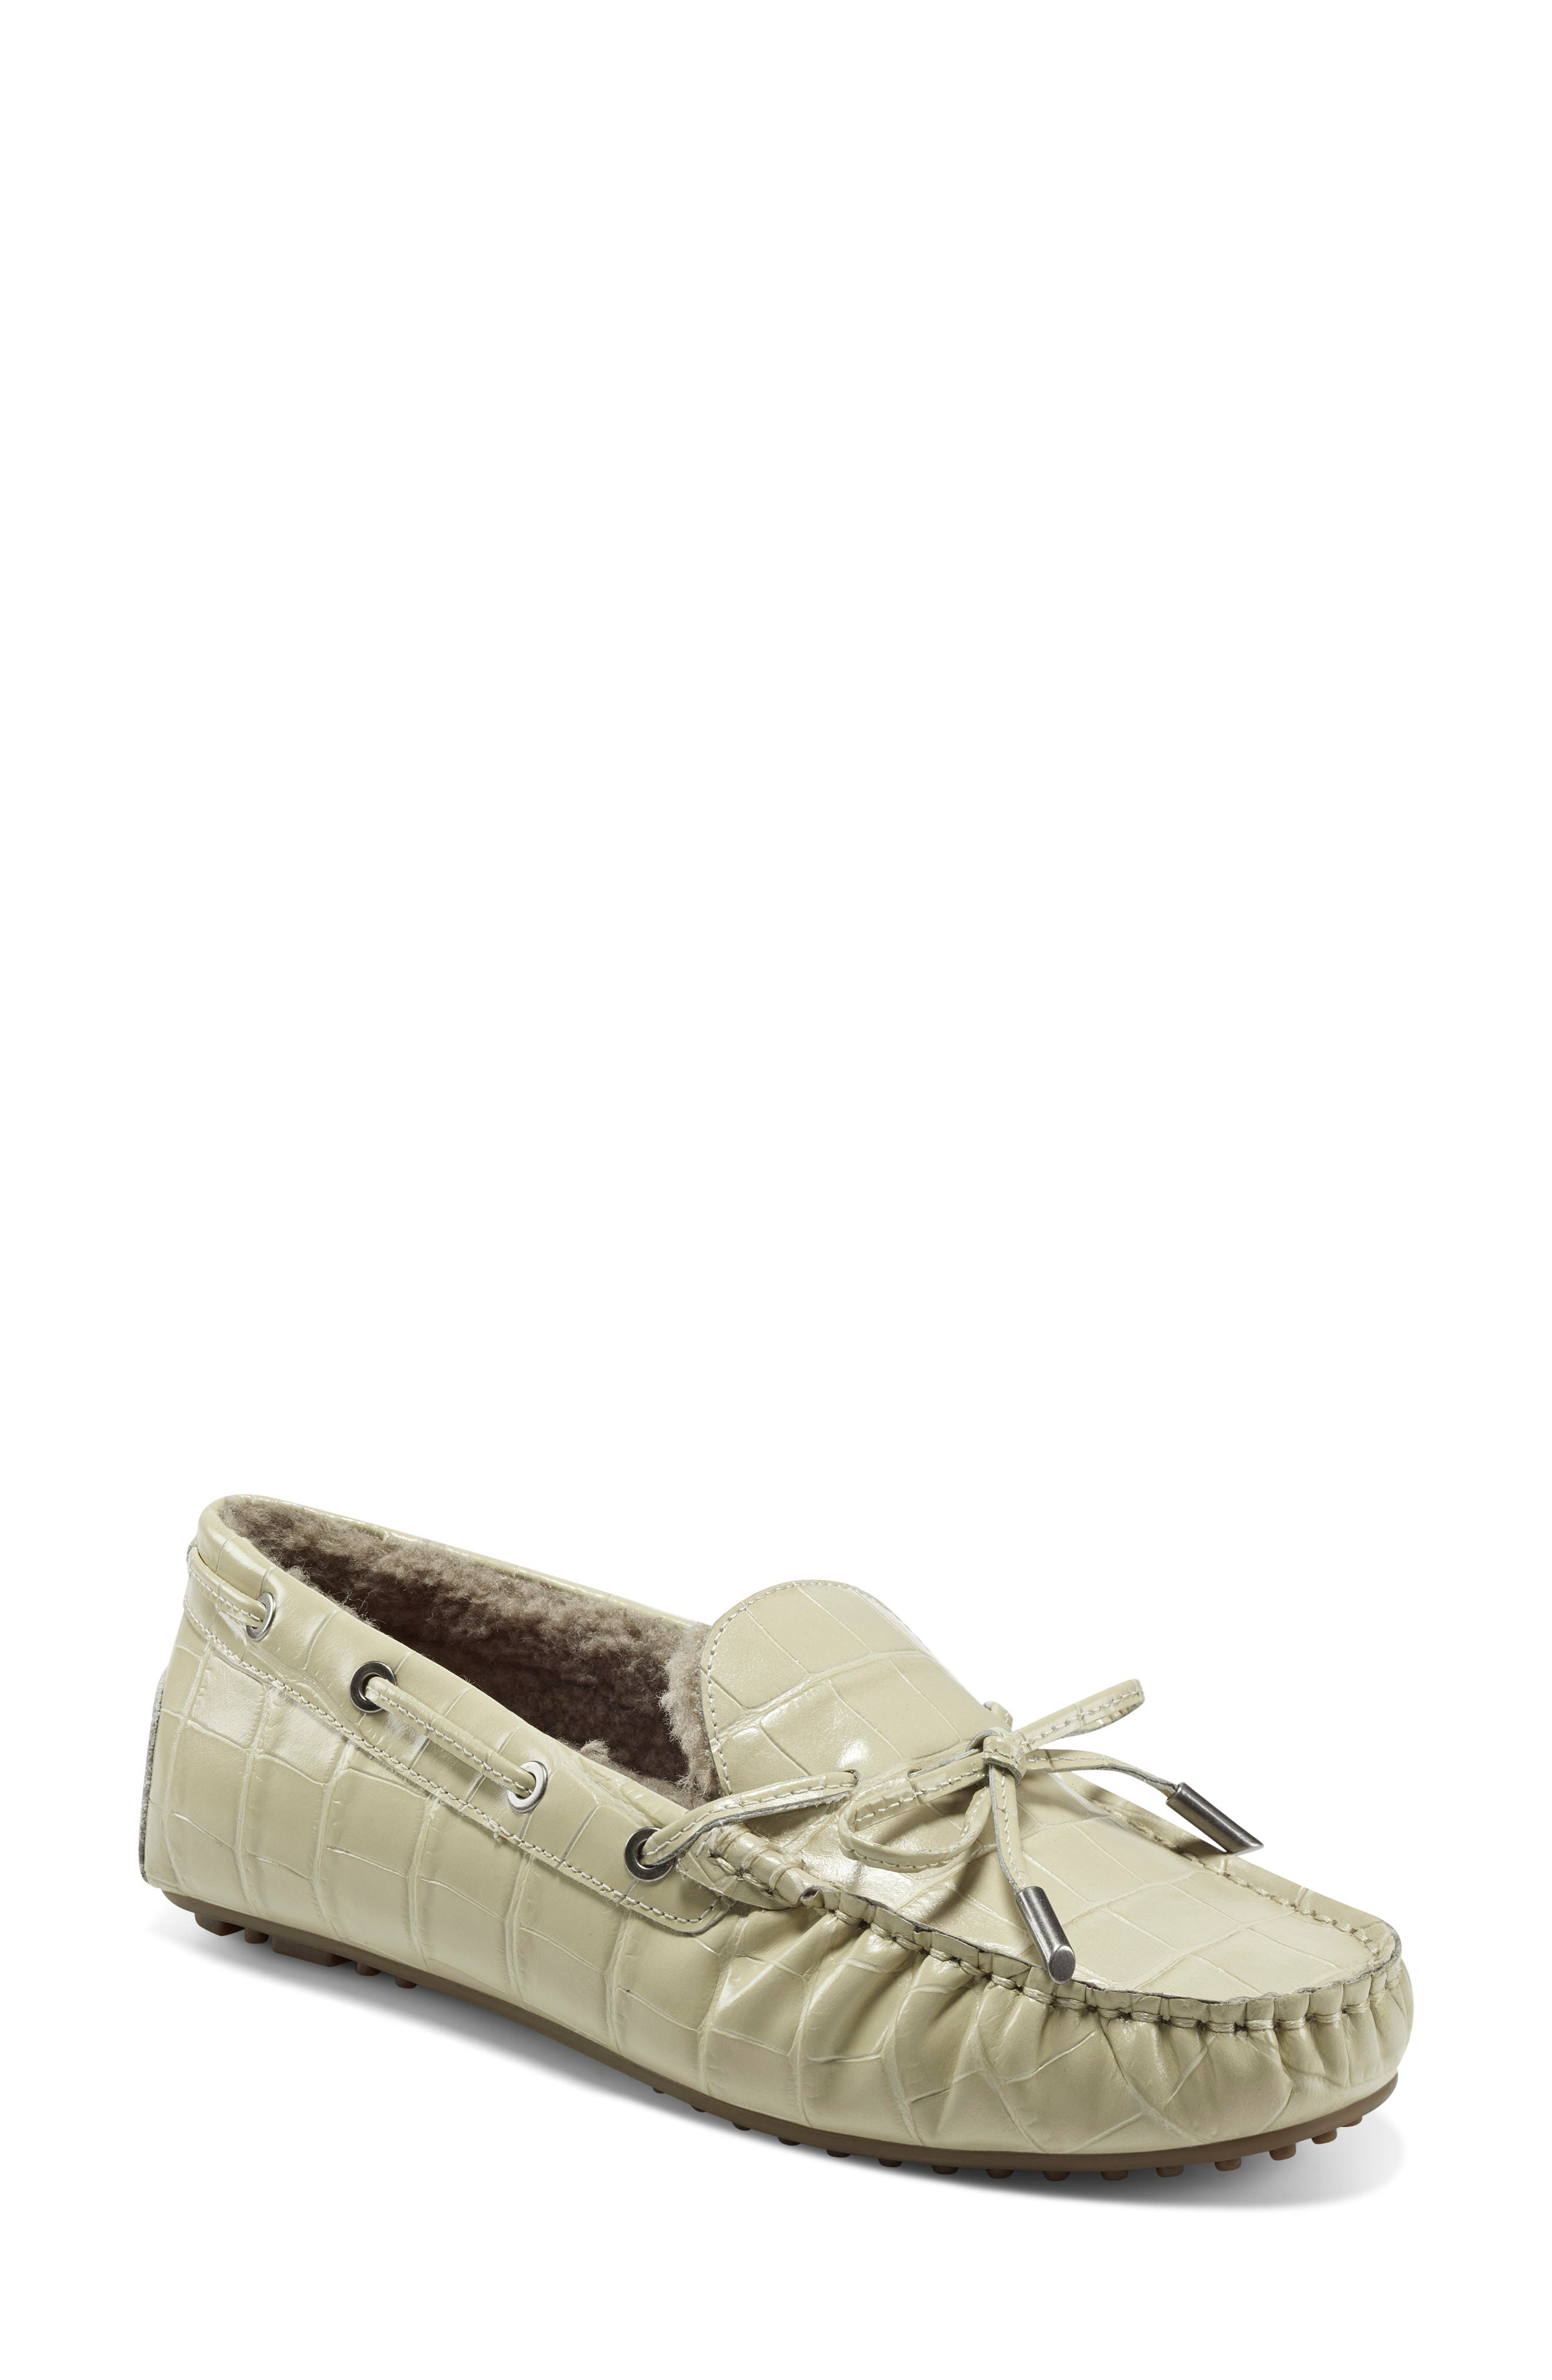 Faux Shearling Boater Driving Moccasin